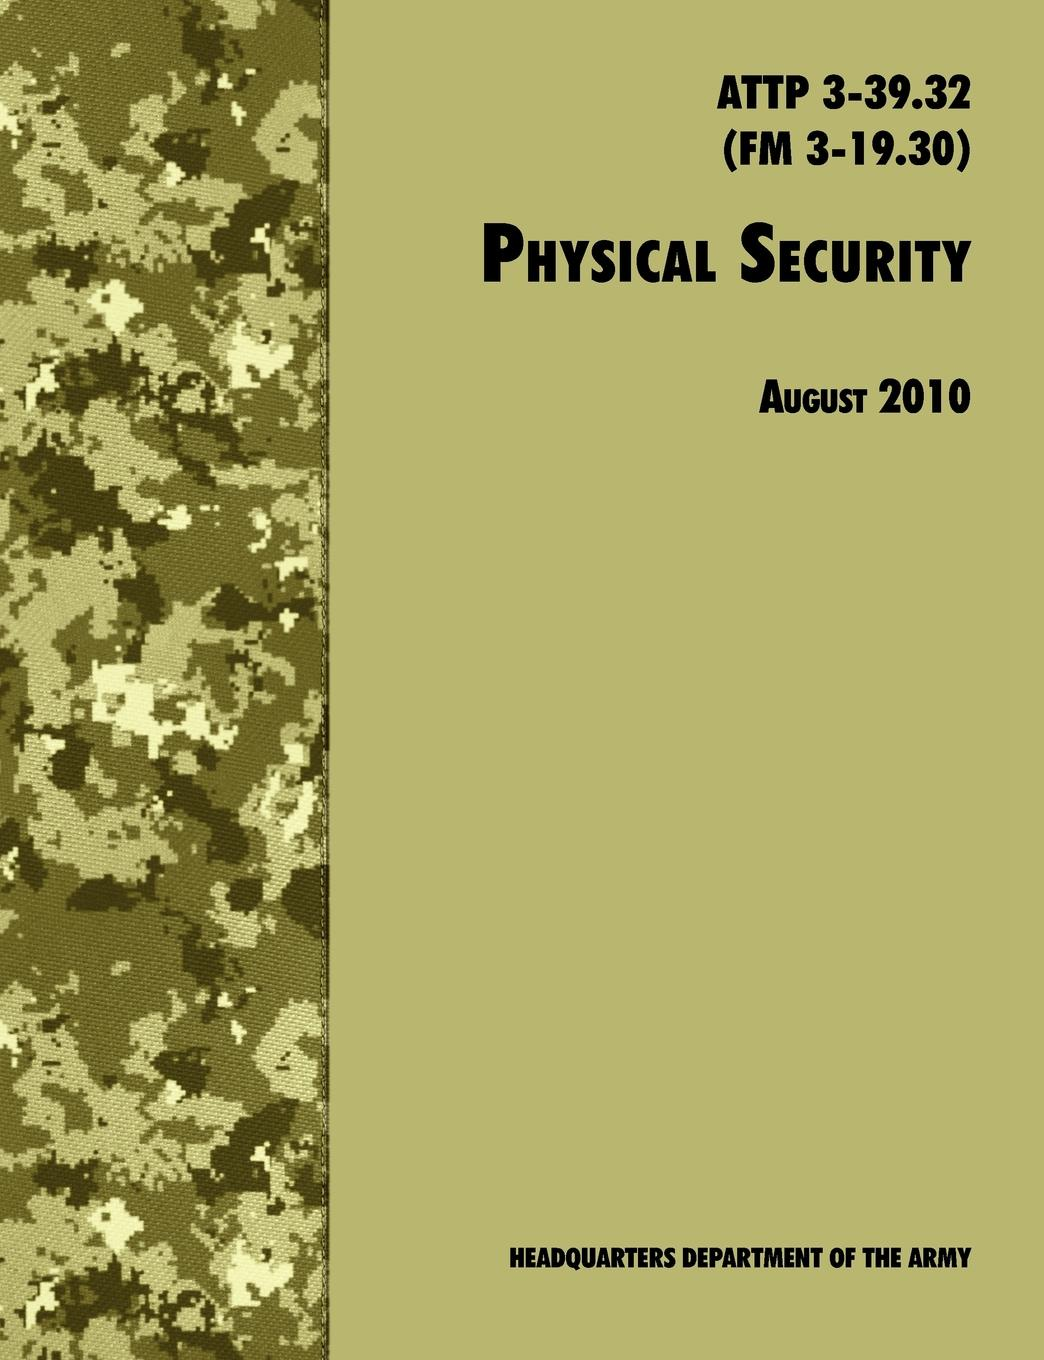 U.S. Department of the Army, Training and Doctrine Command Physical Security. The Official U.S. Army Field Manual ATTP 3-39.32 (FM 3-19.30), August 2010 revision national security